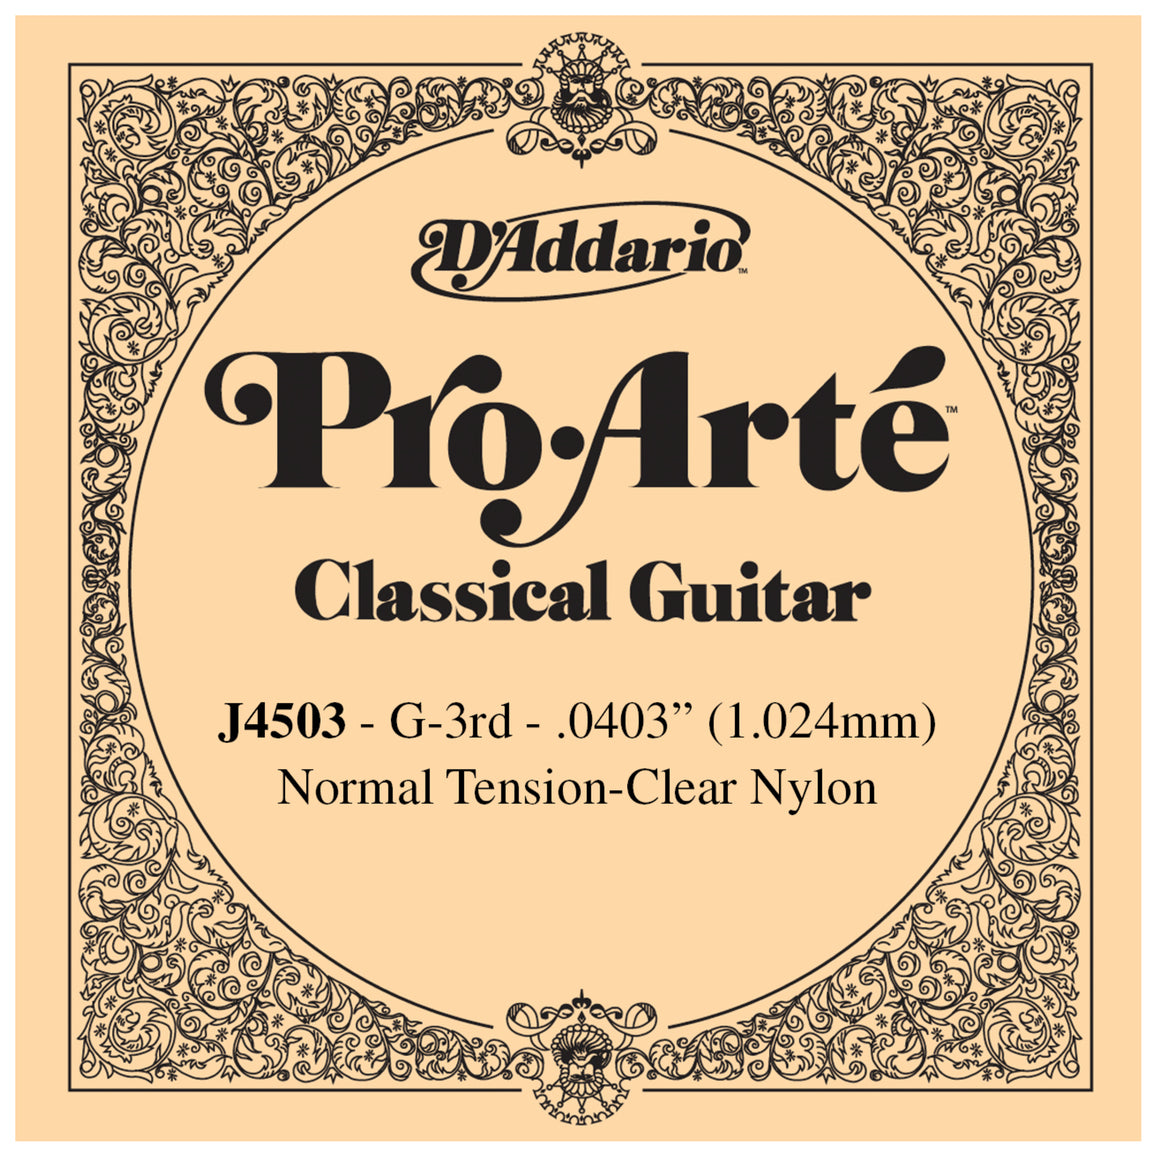 D'Addario Pro Arte 3rd Nylon Single String .0403 J4503